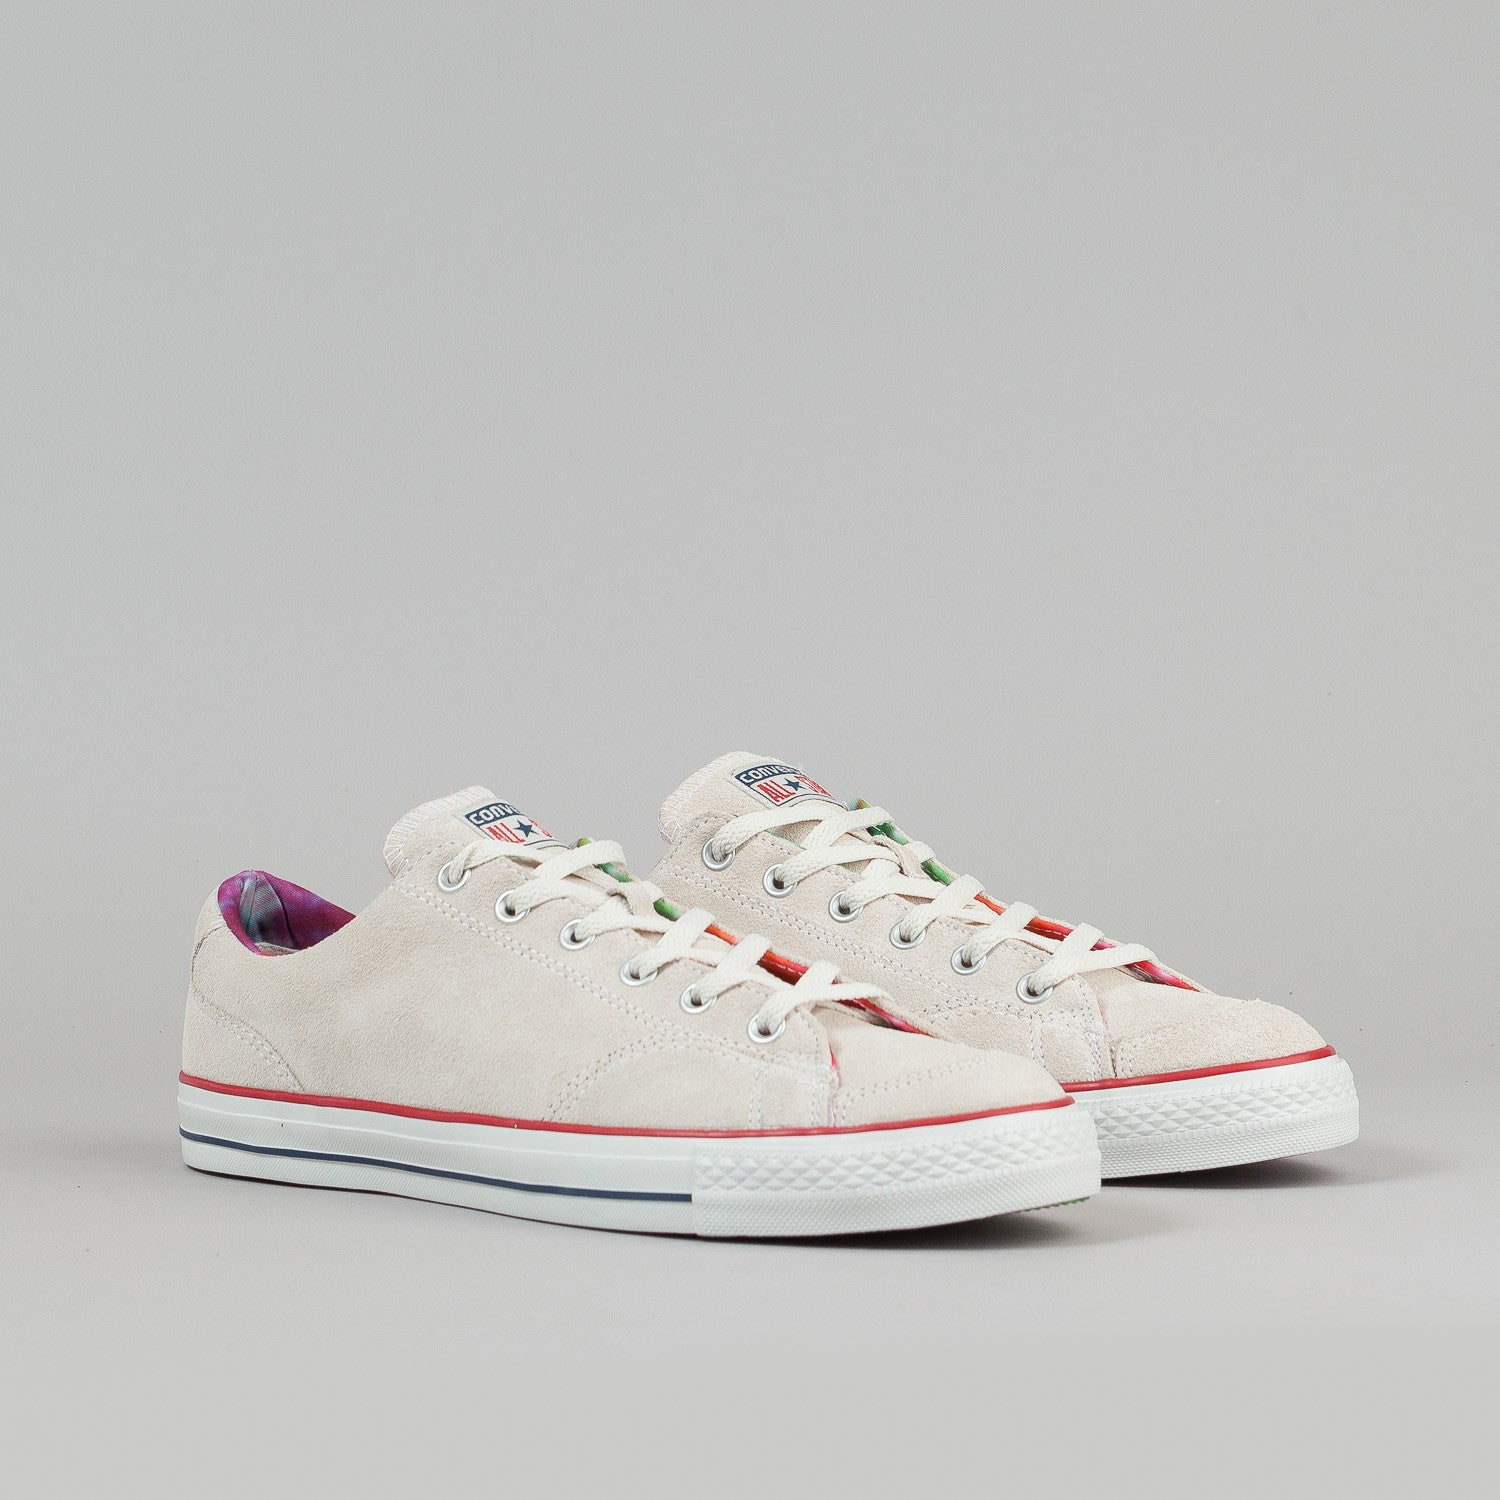 Converse CT LS OX Shoes - Parchment / White